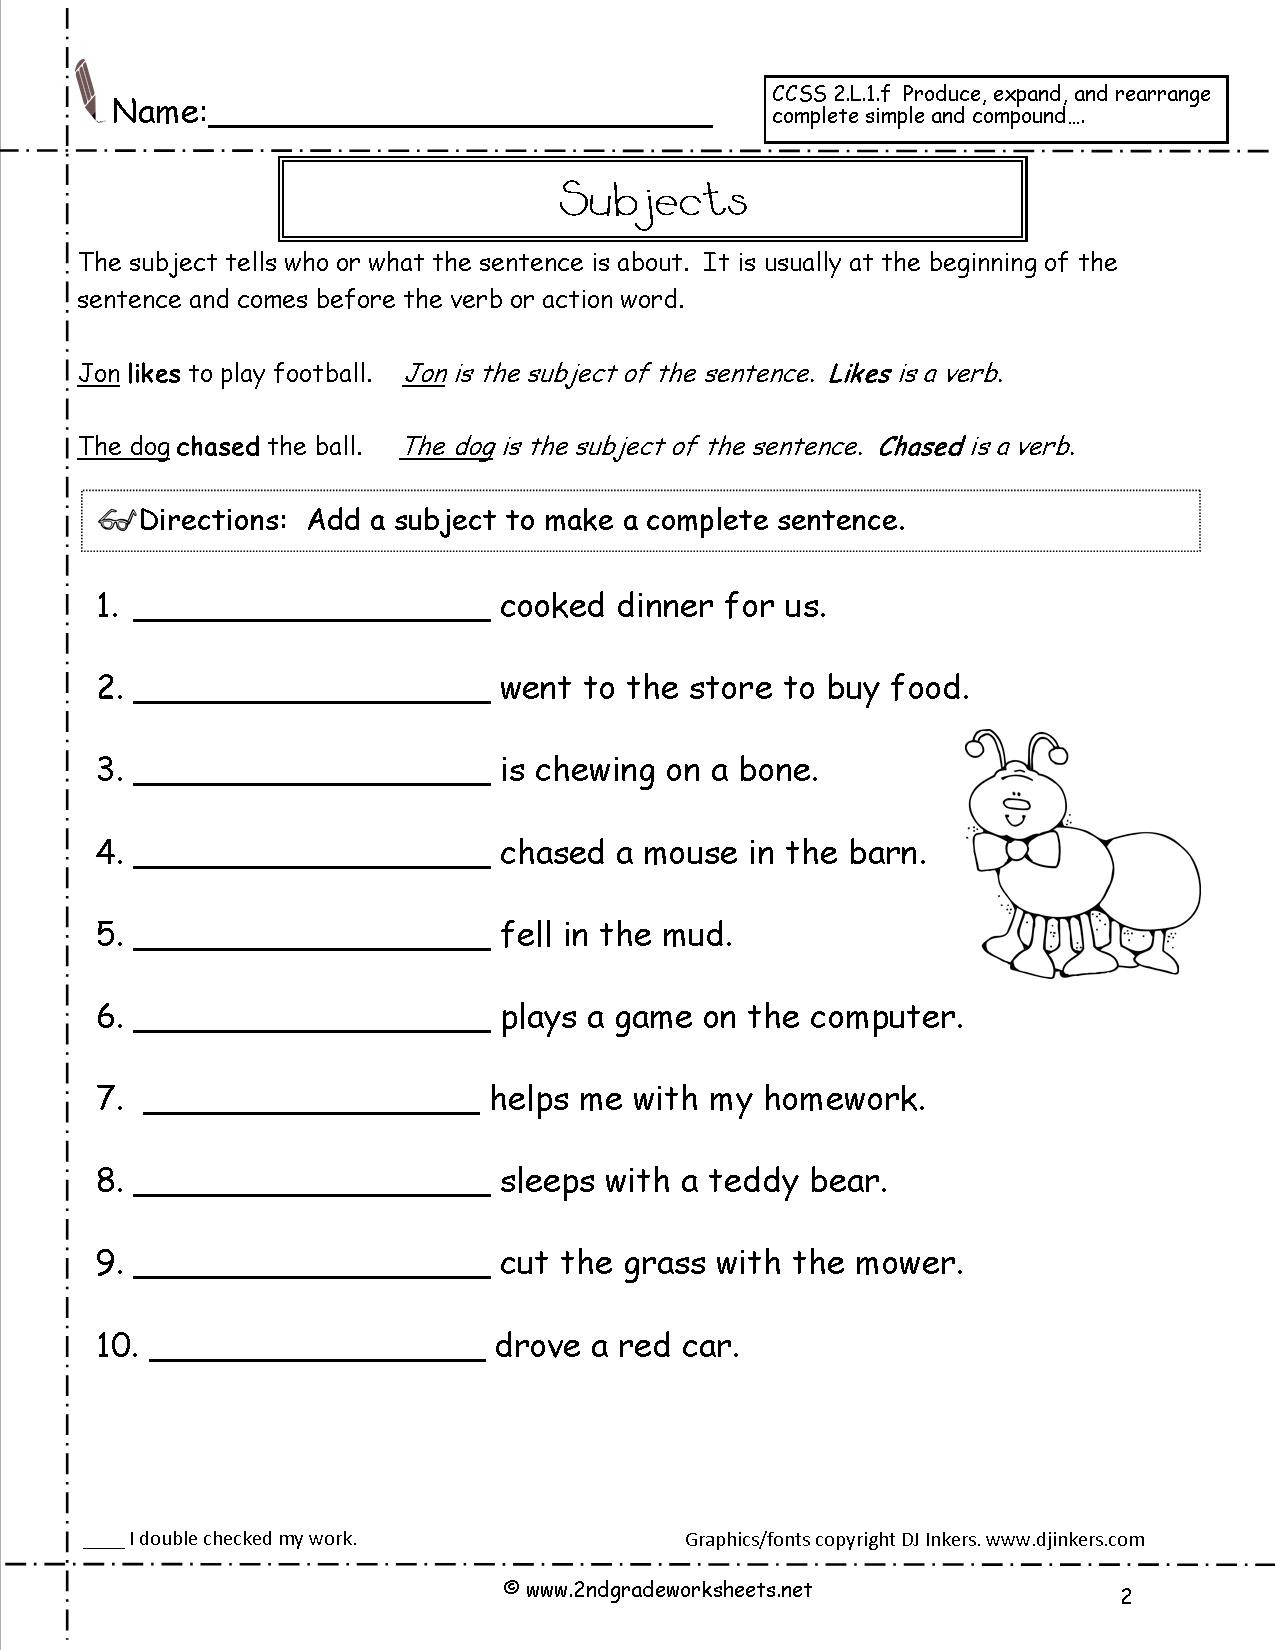 First Grade Sentence Writing Worksheets Basic Math Words Printable Cursive Worksheets 3rd Grade